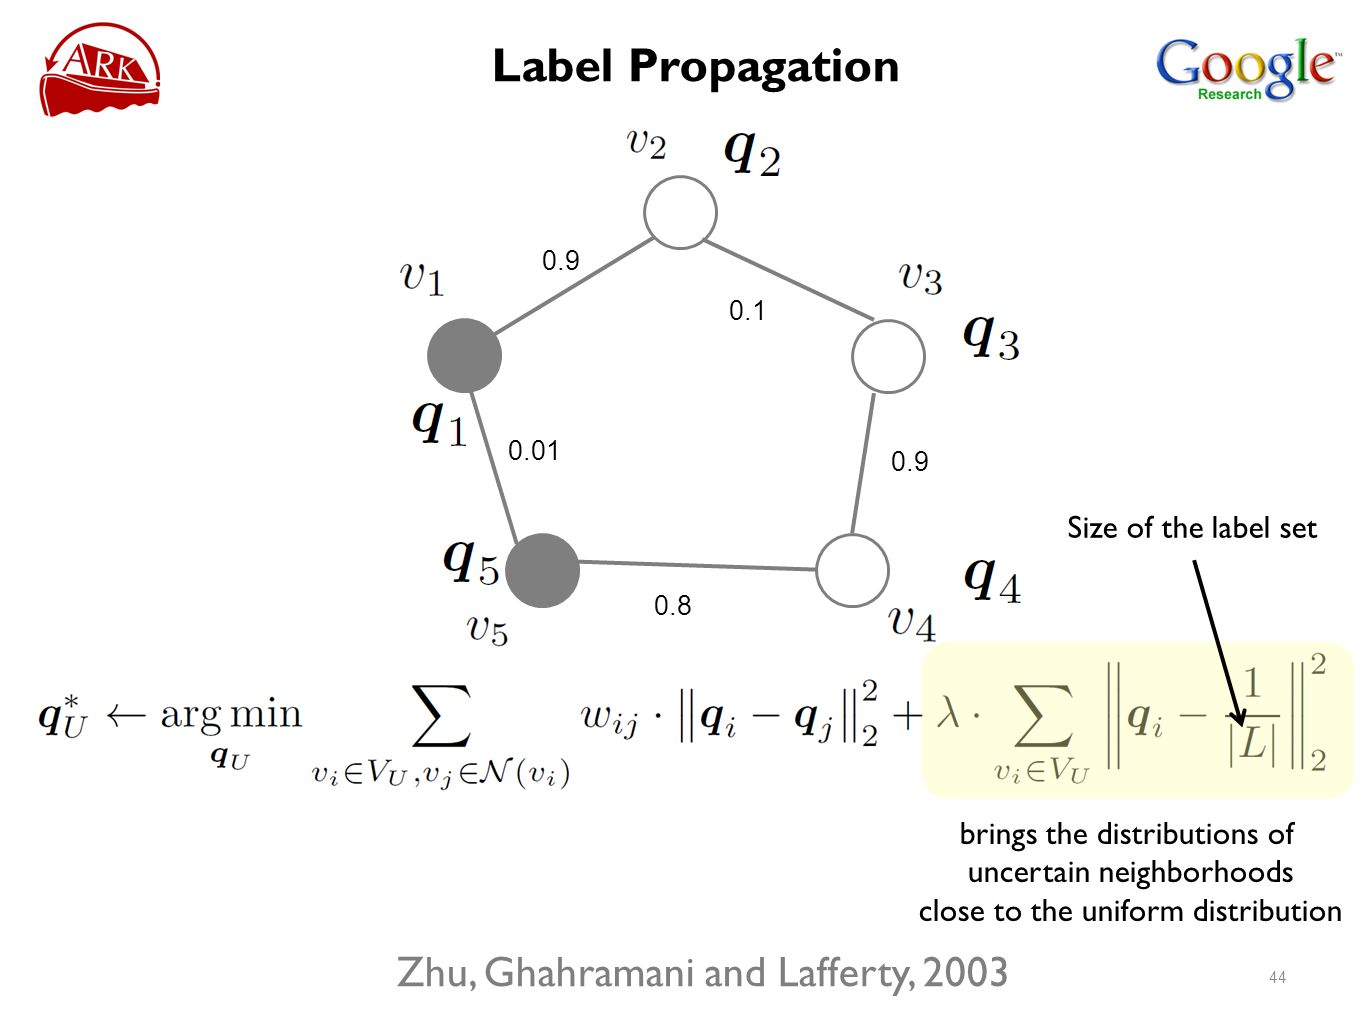 0.9 0.01 0.8 0.9 0.1 brings the distributions of uncertain neighborhoods close to the uniform distribution Size of the label set Zhu, Ghahramani and L